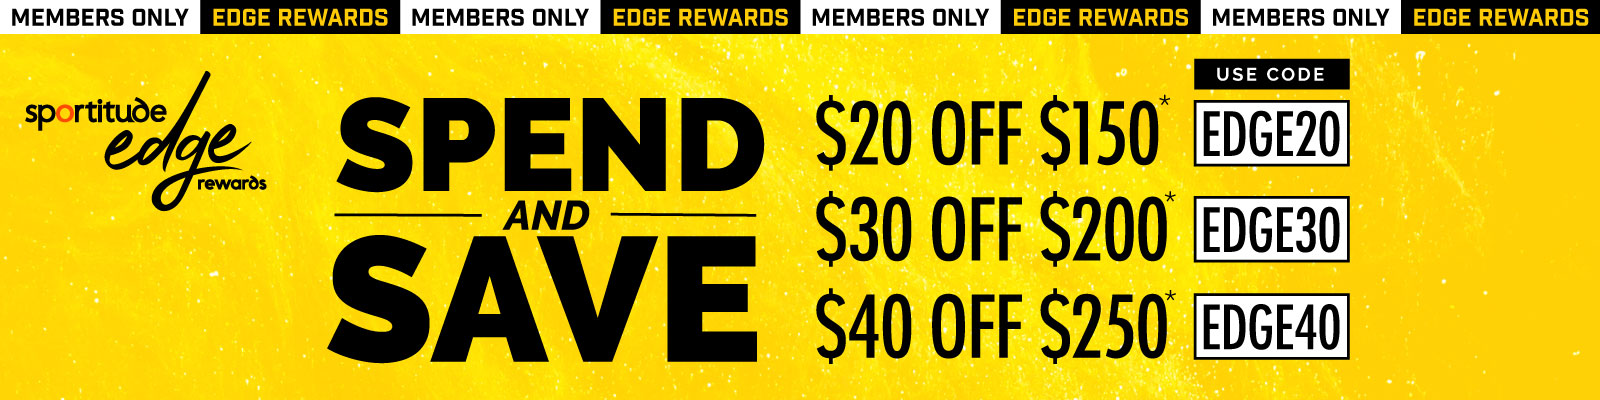 Edge Rewards Spend & Save